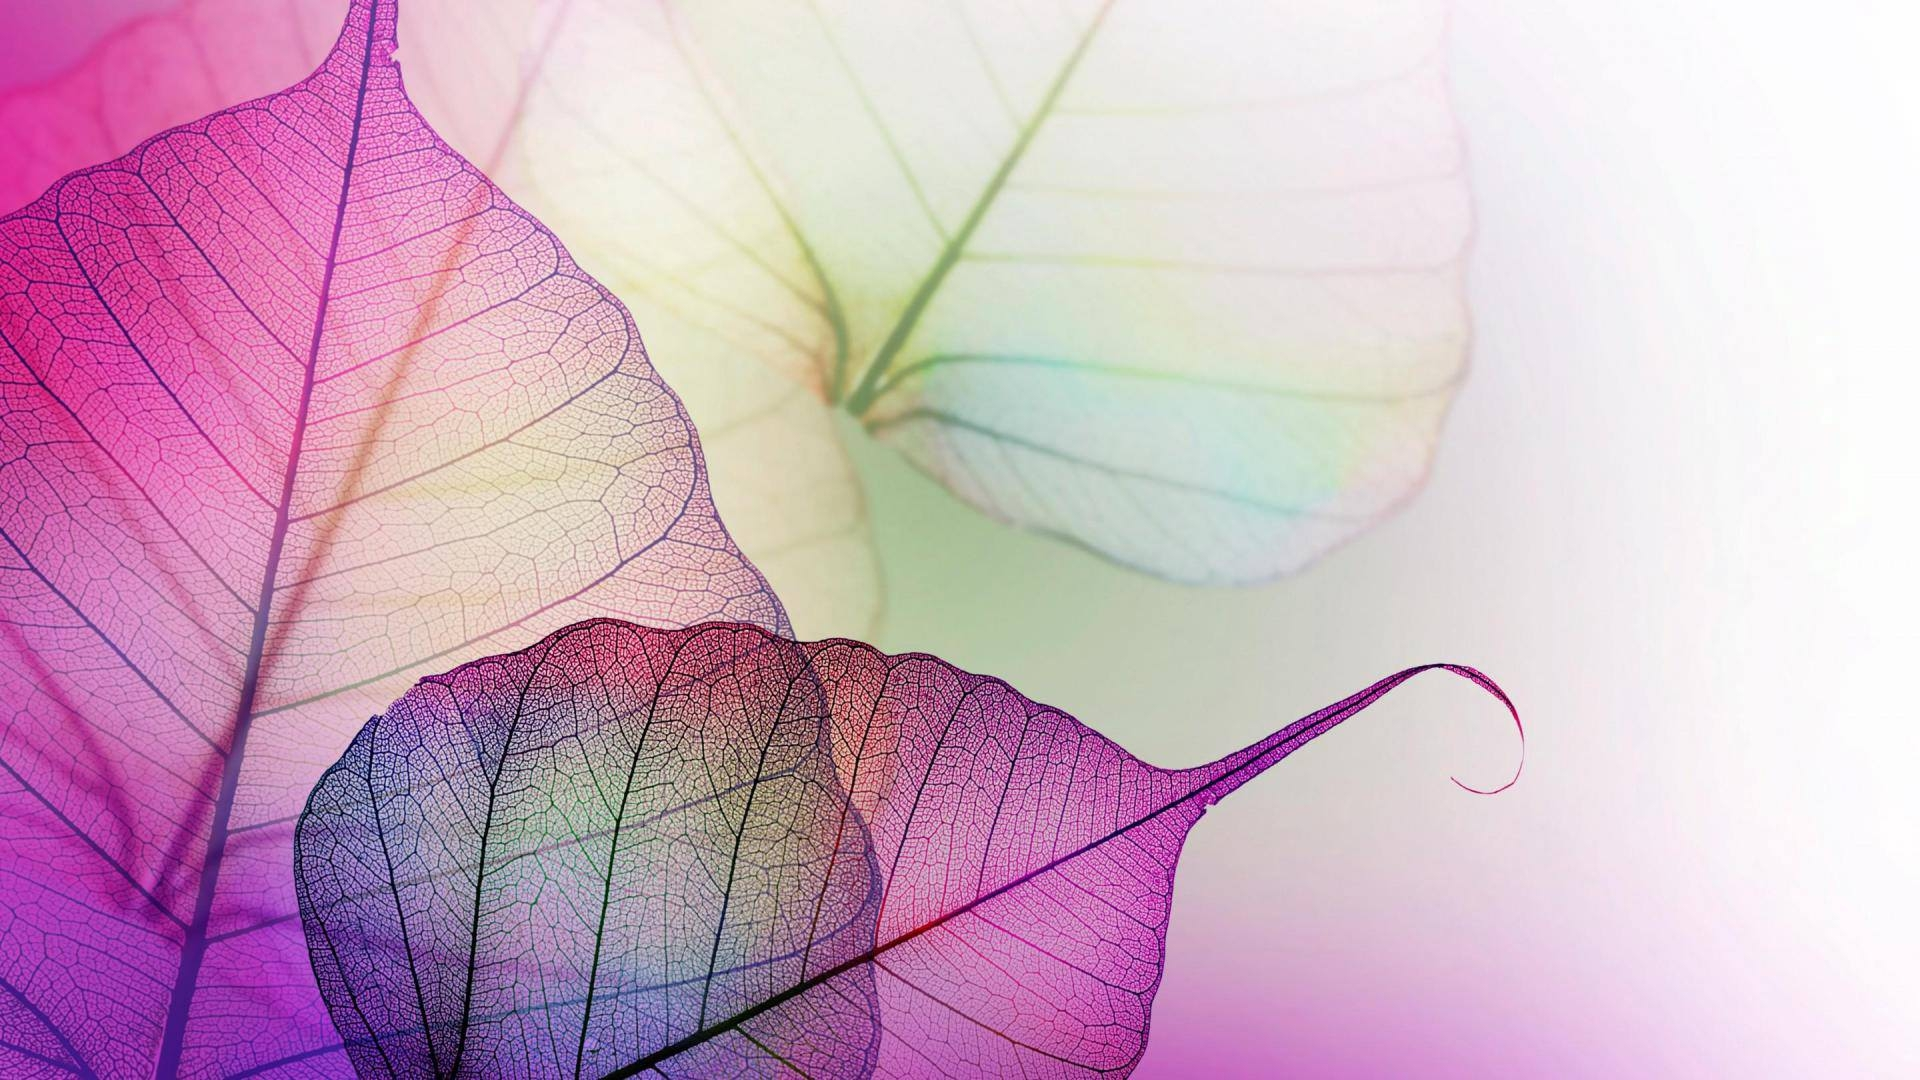 Pink Leaves Photography Desktop Wallpaper